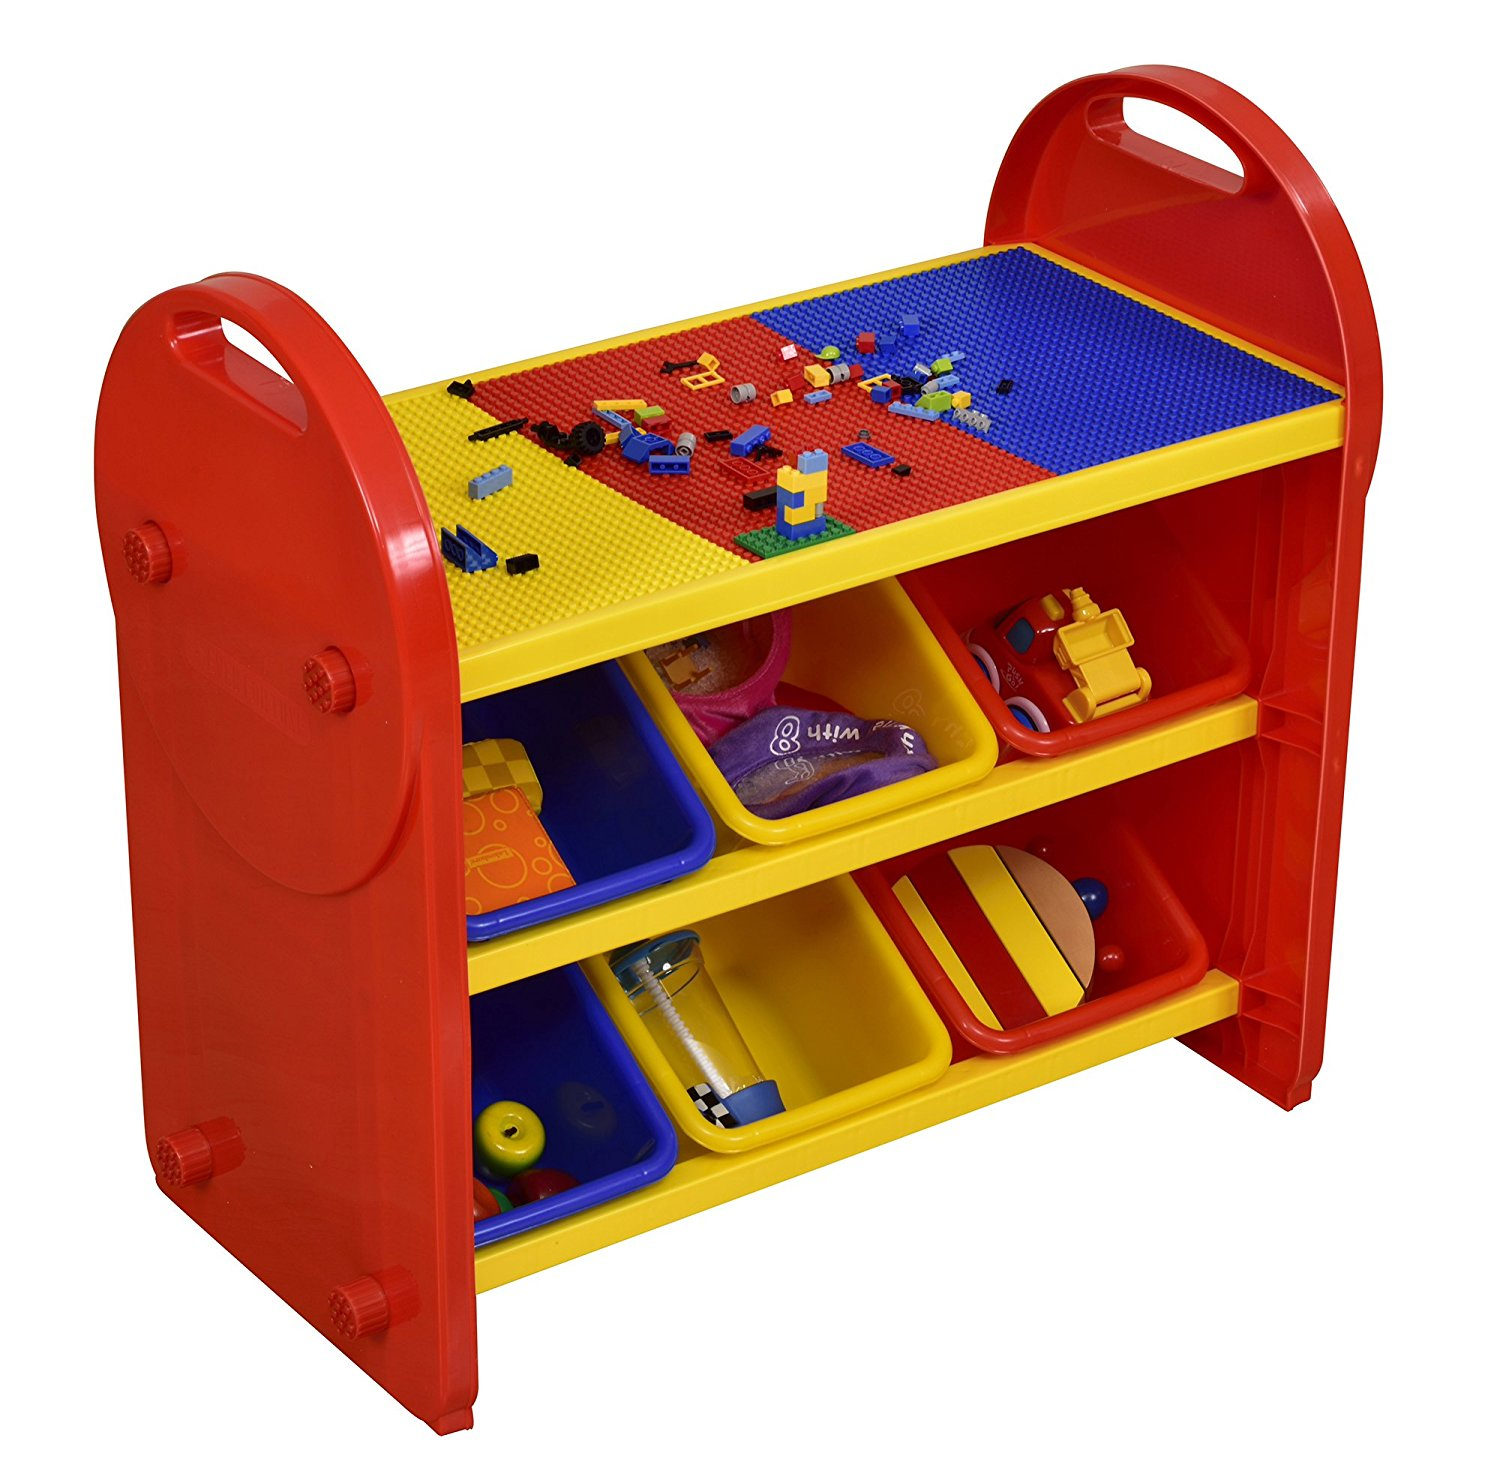 Toy Box Toys Details About Children S Toy Box Kids Storage Organiser Liberty House Toys 6 Bin Toy Organiser